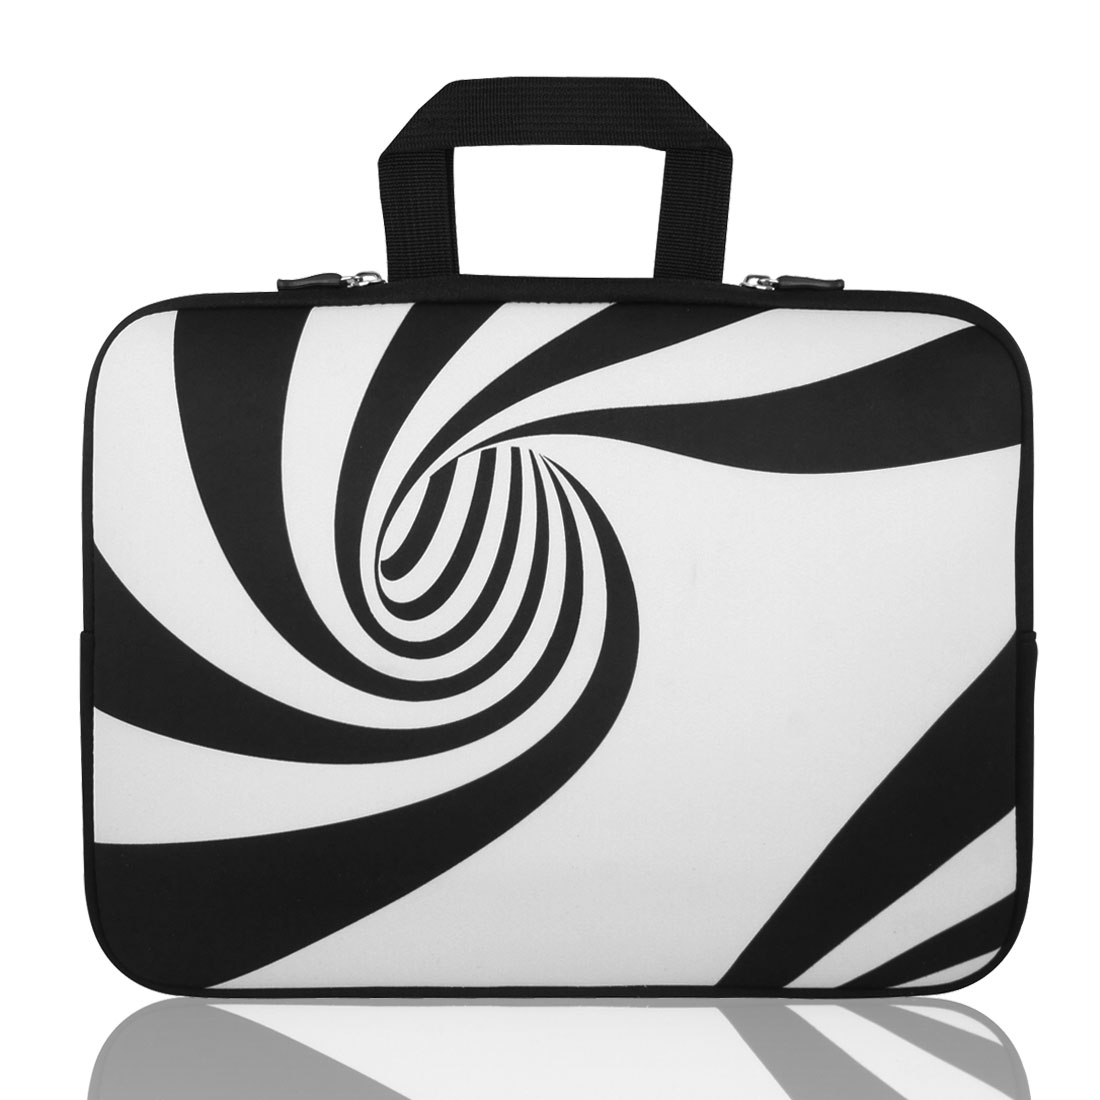 "13"" 13.3"" Black White Swirl Notebook Laptop Sleeve Handle Bag Case for Macbook Pro/Air"